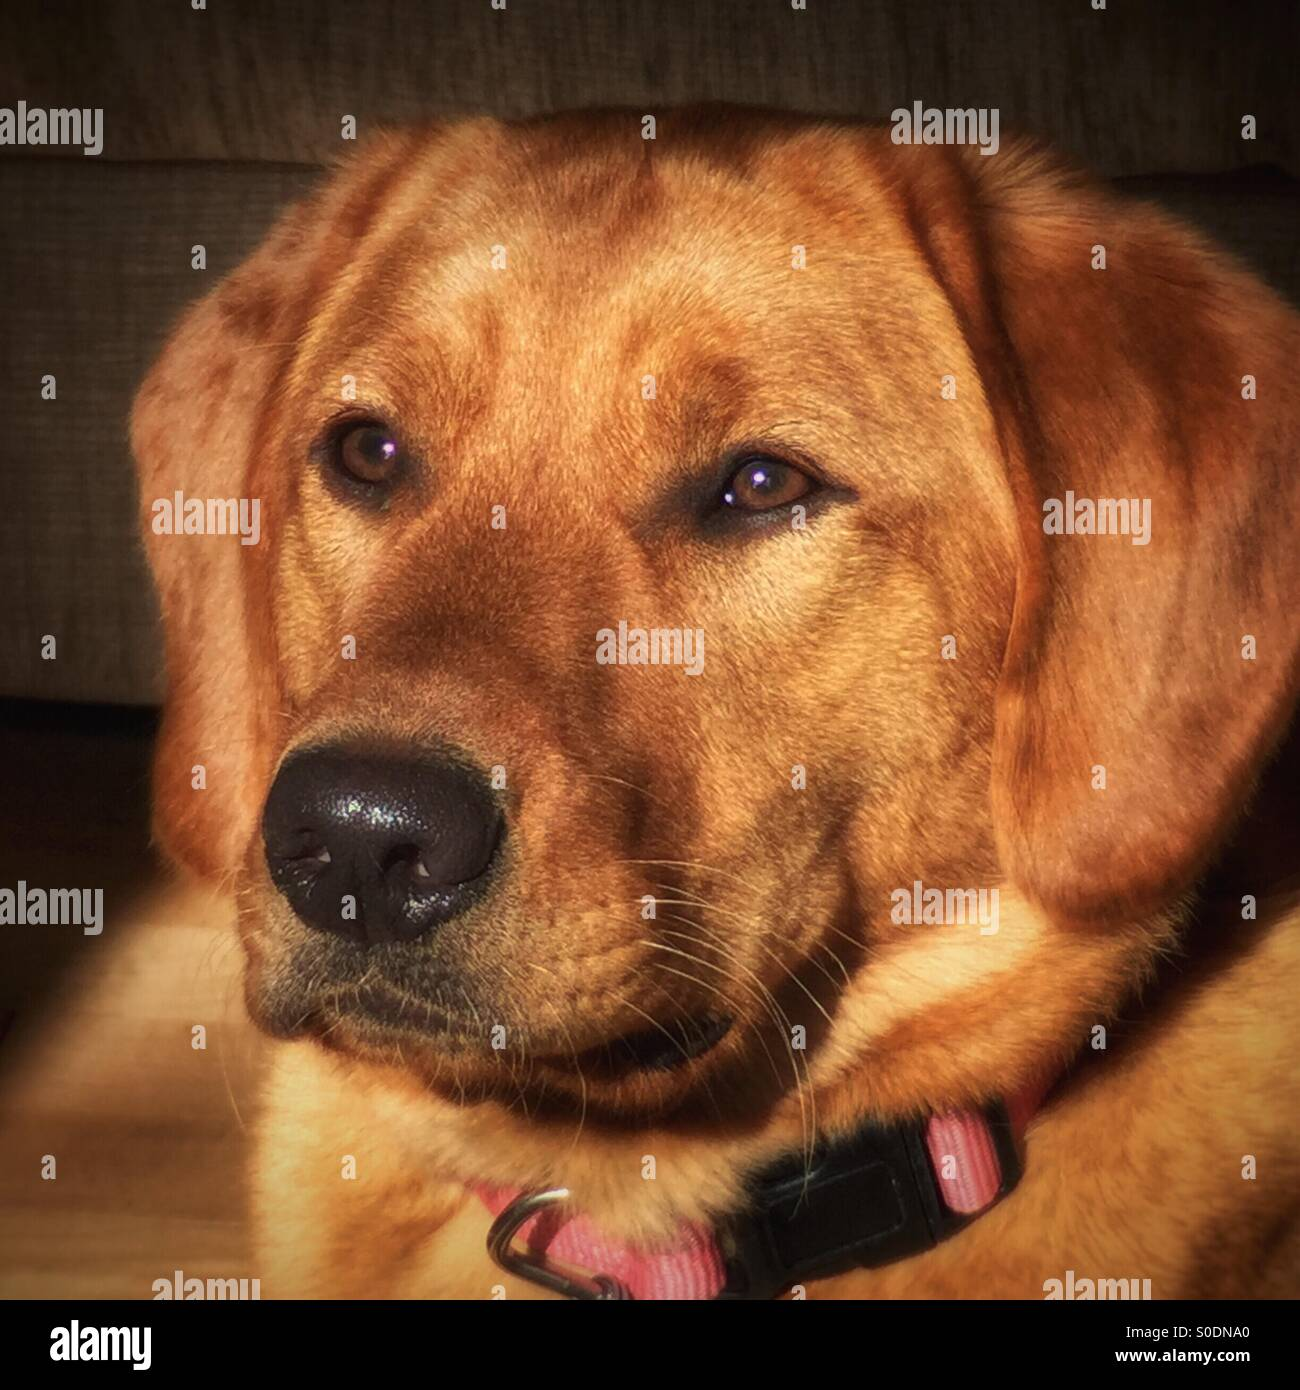 Portrait of the family dog - Stock Image